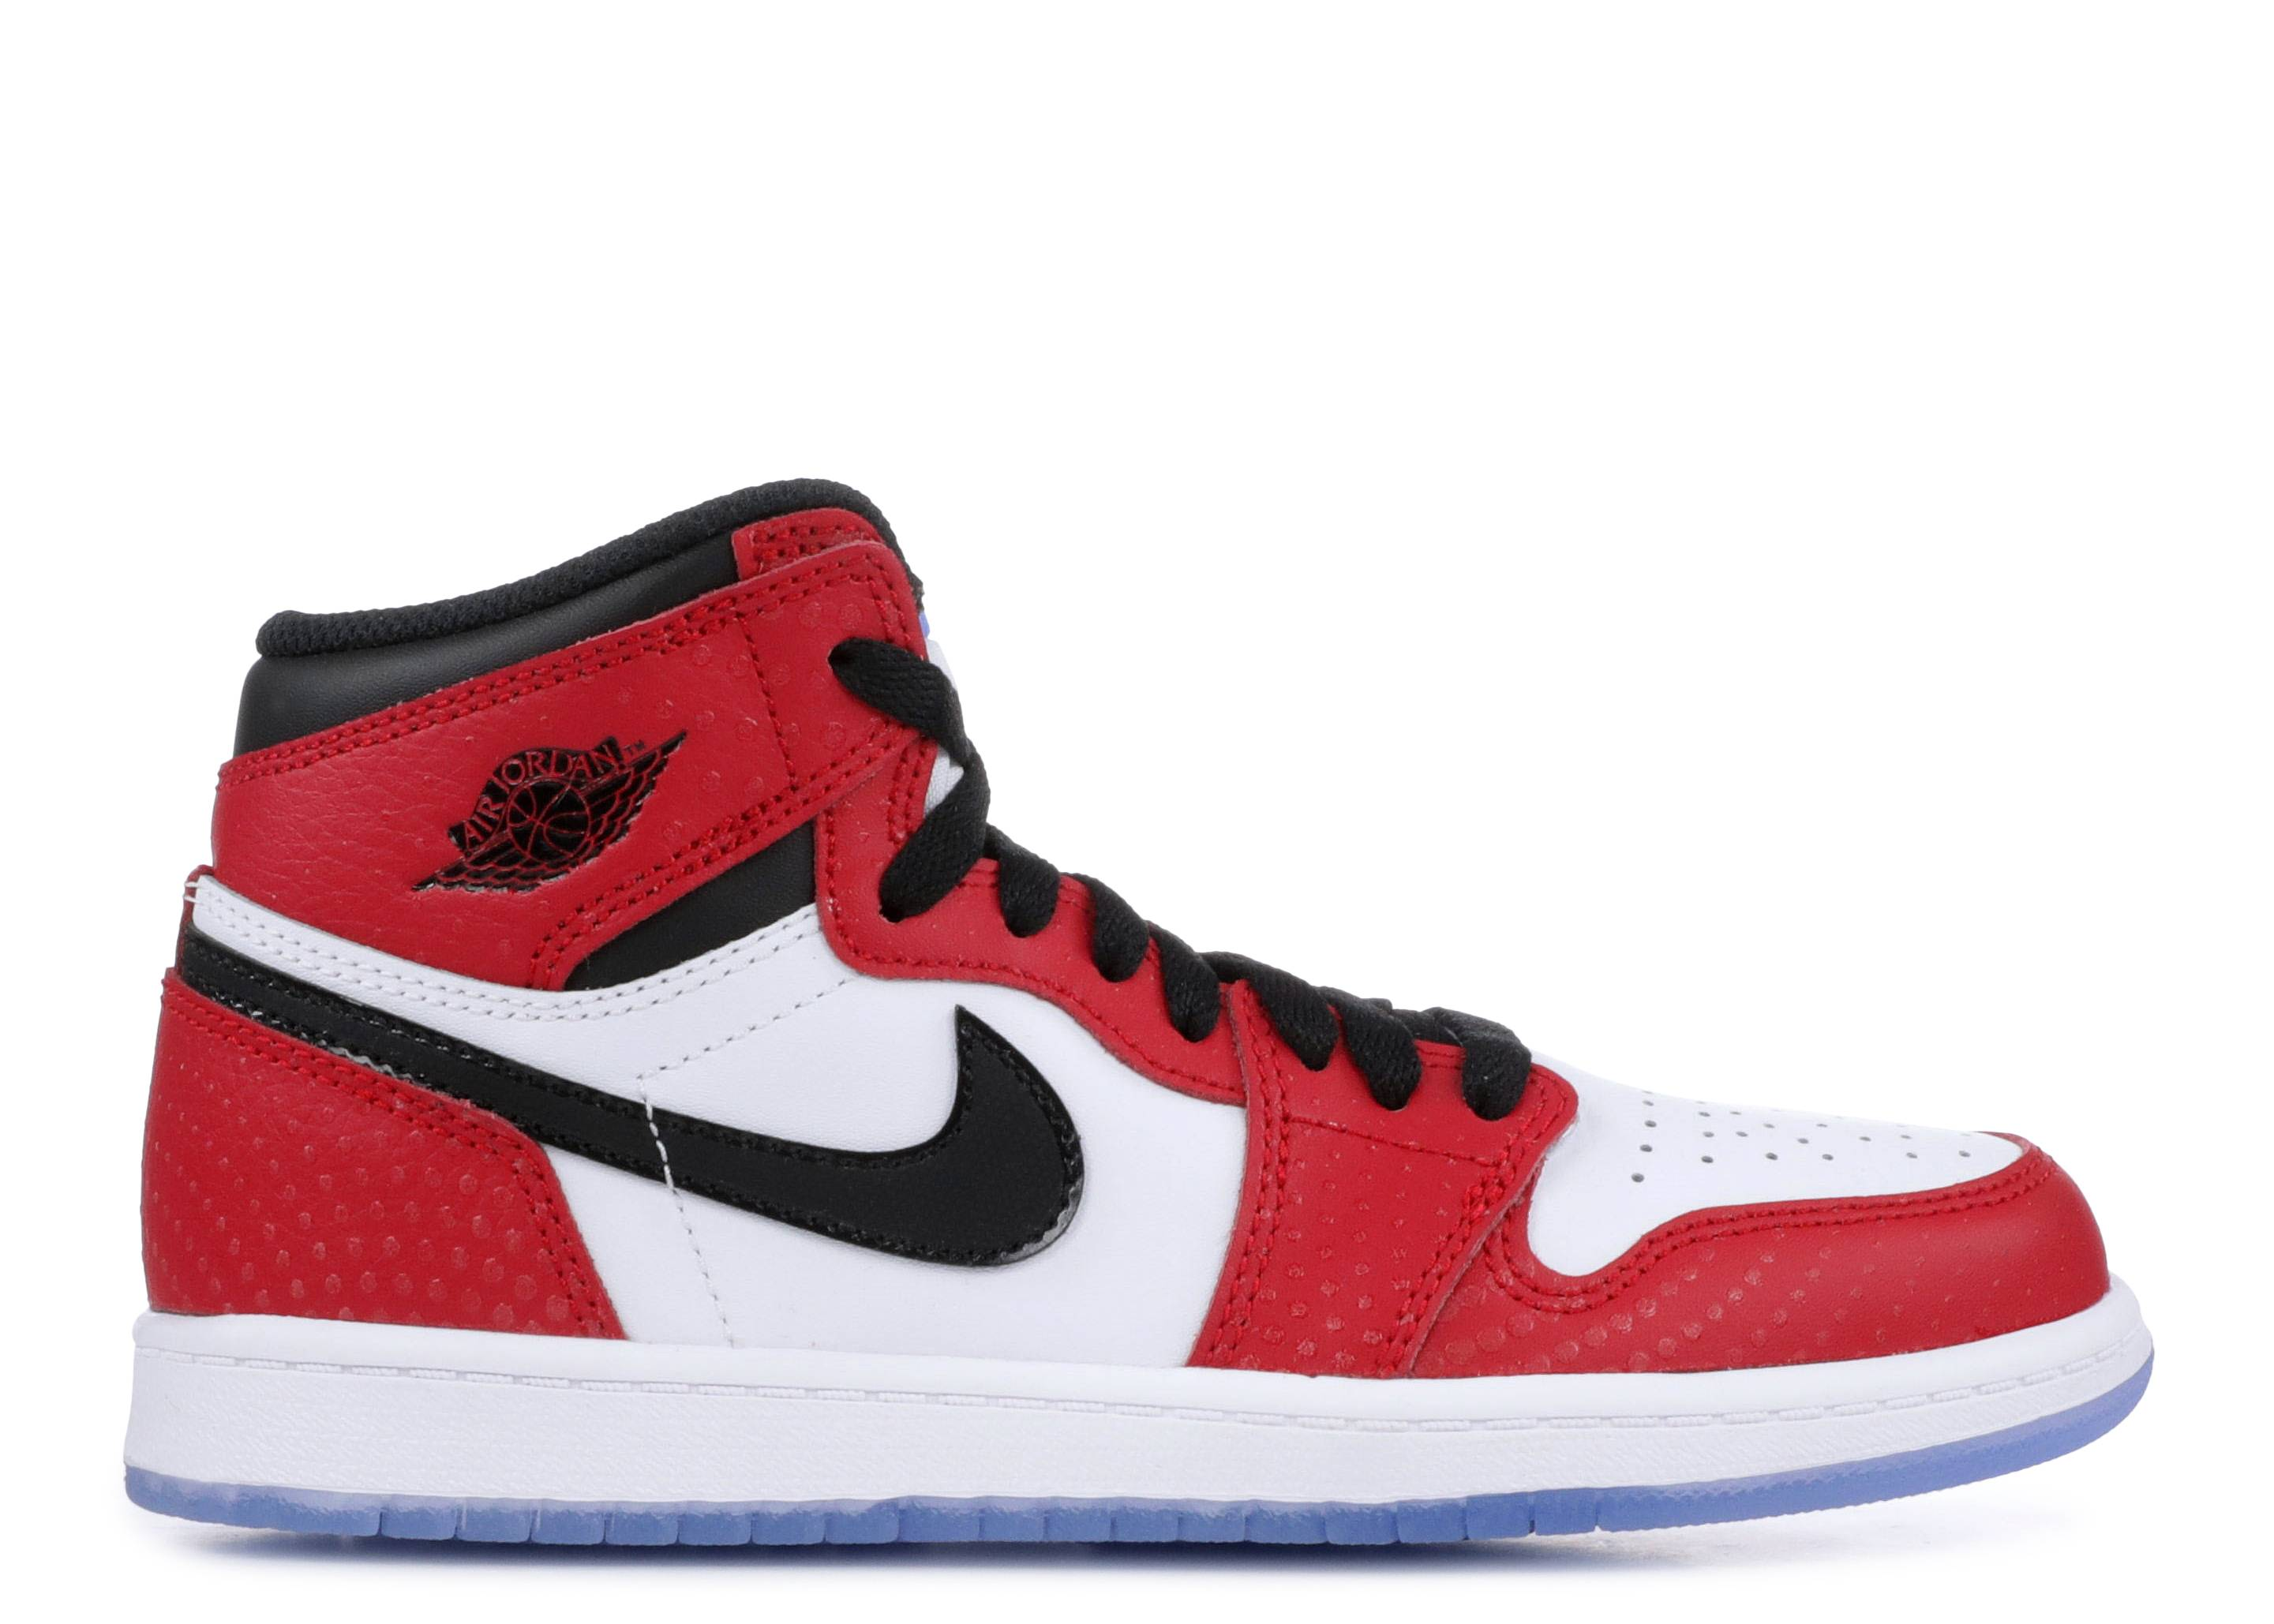 official photos f5a48 0f8e5 jordan 1 retro high og (ps)